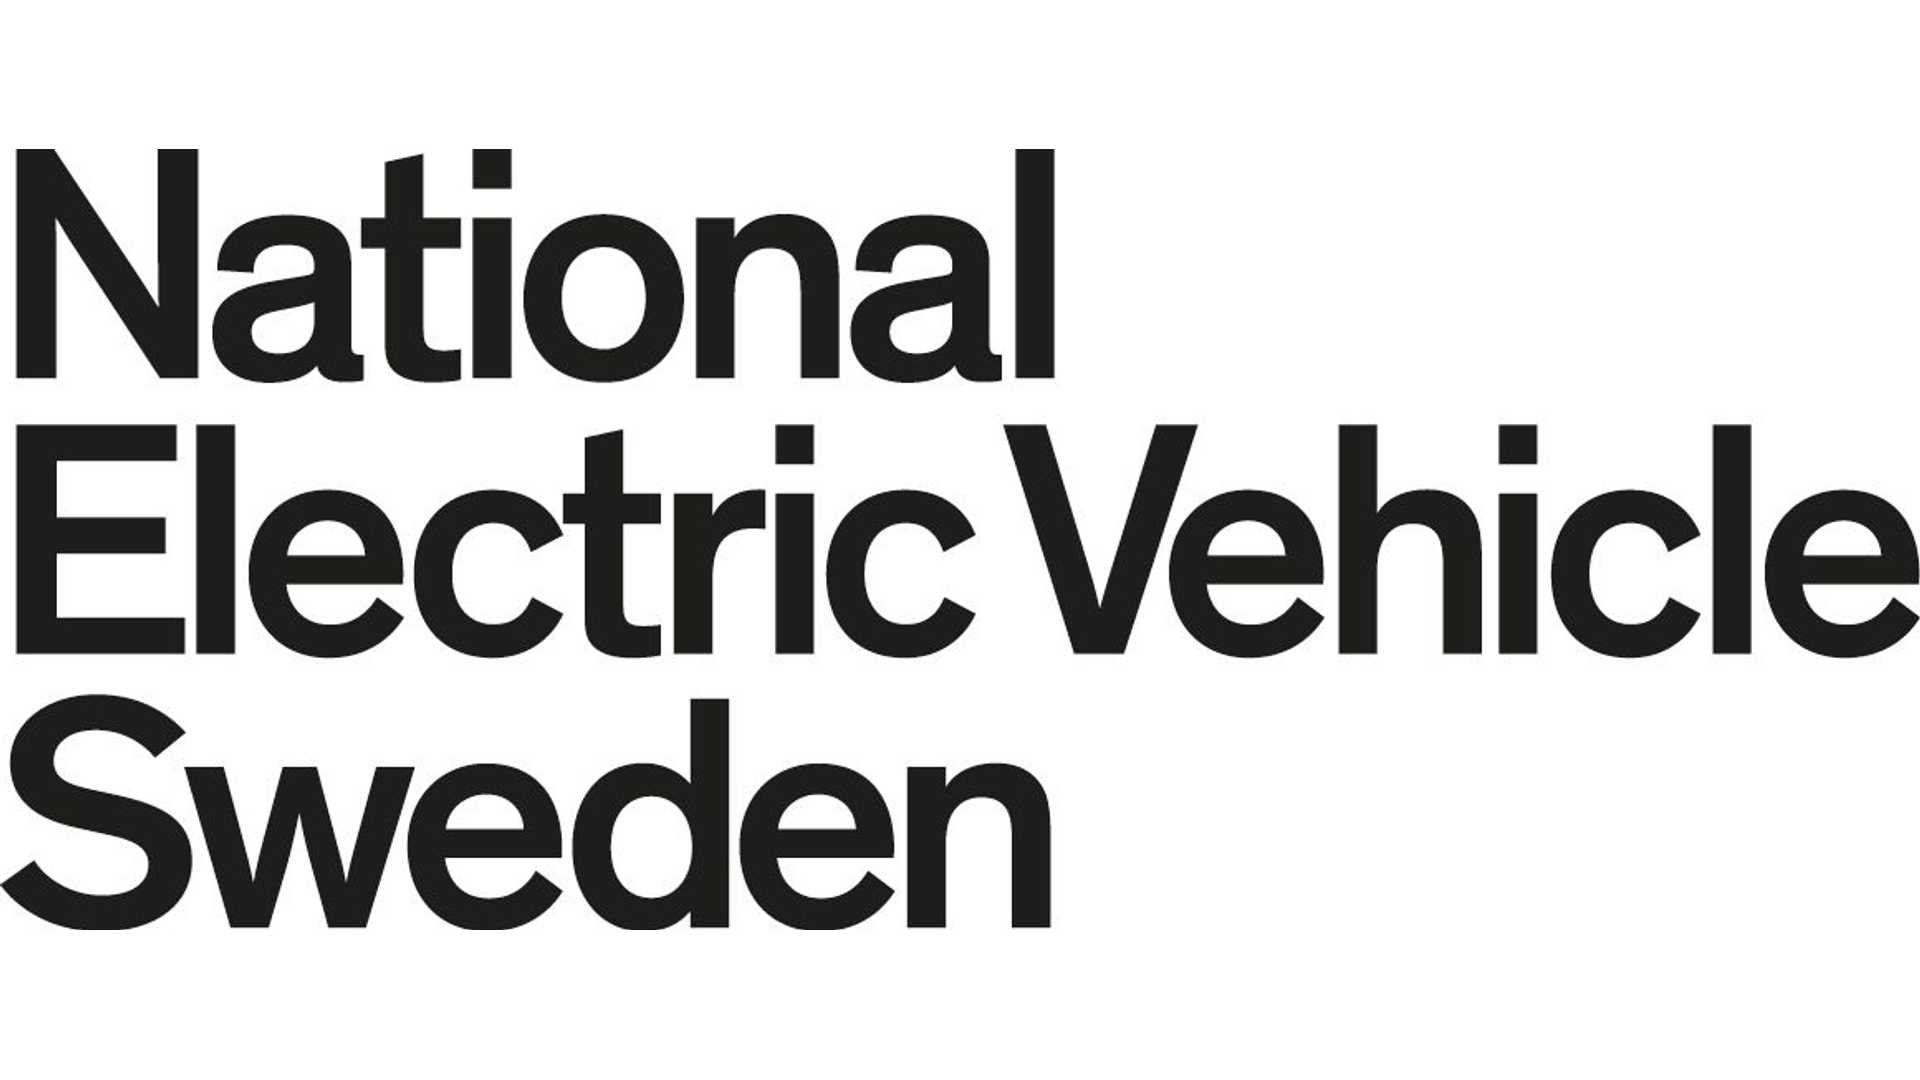 National Electric Vehicle Sweden Adds Minivan To Upcoming Product Lineup